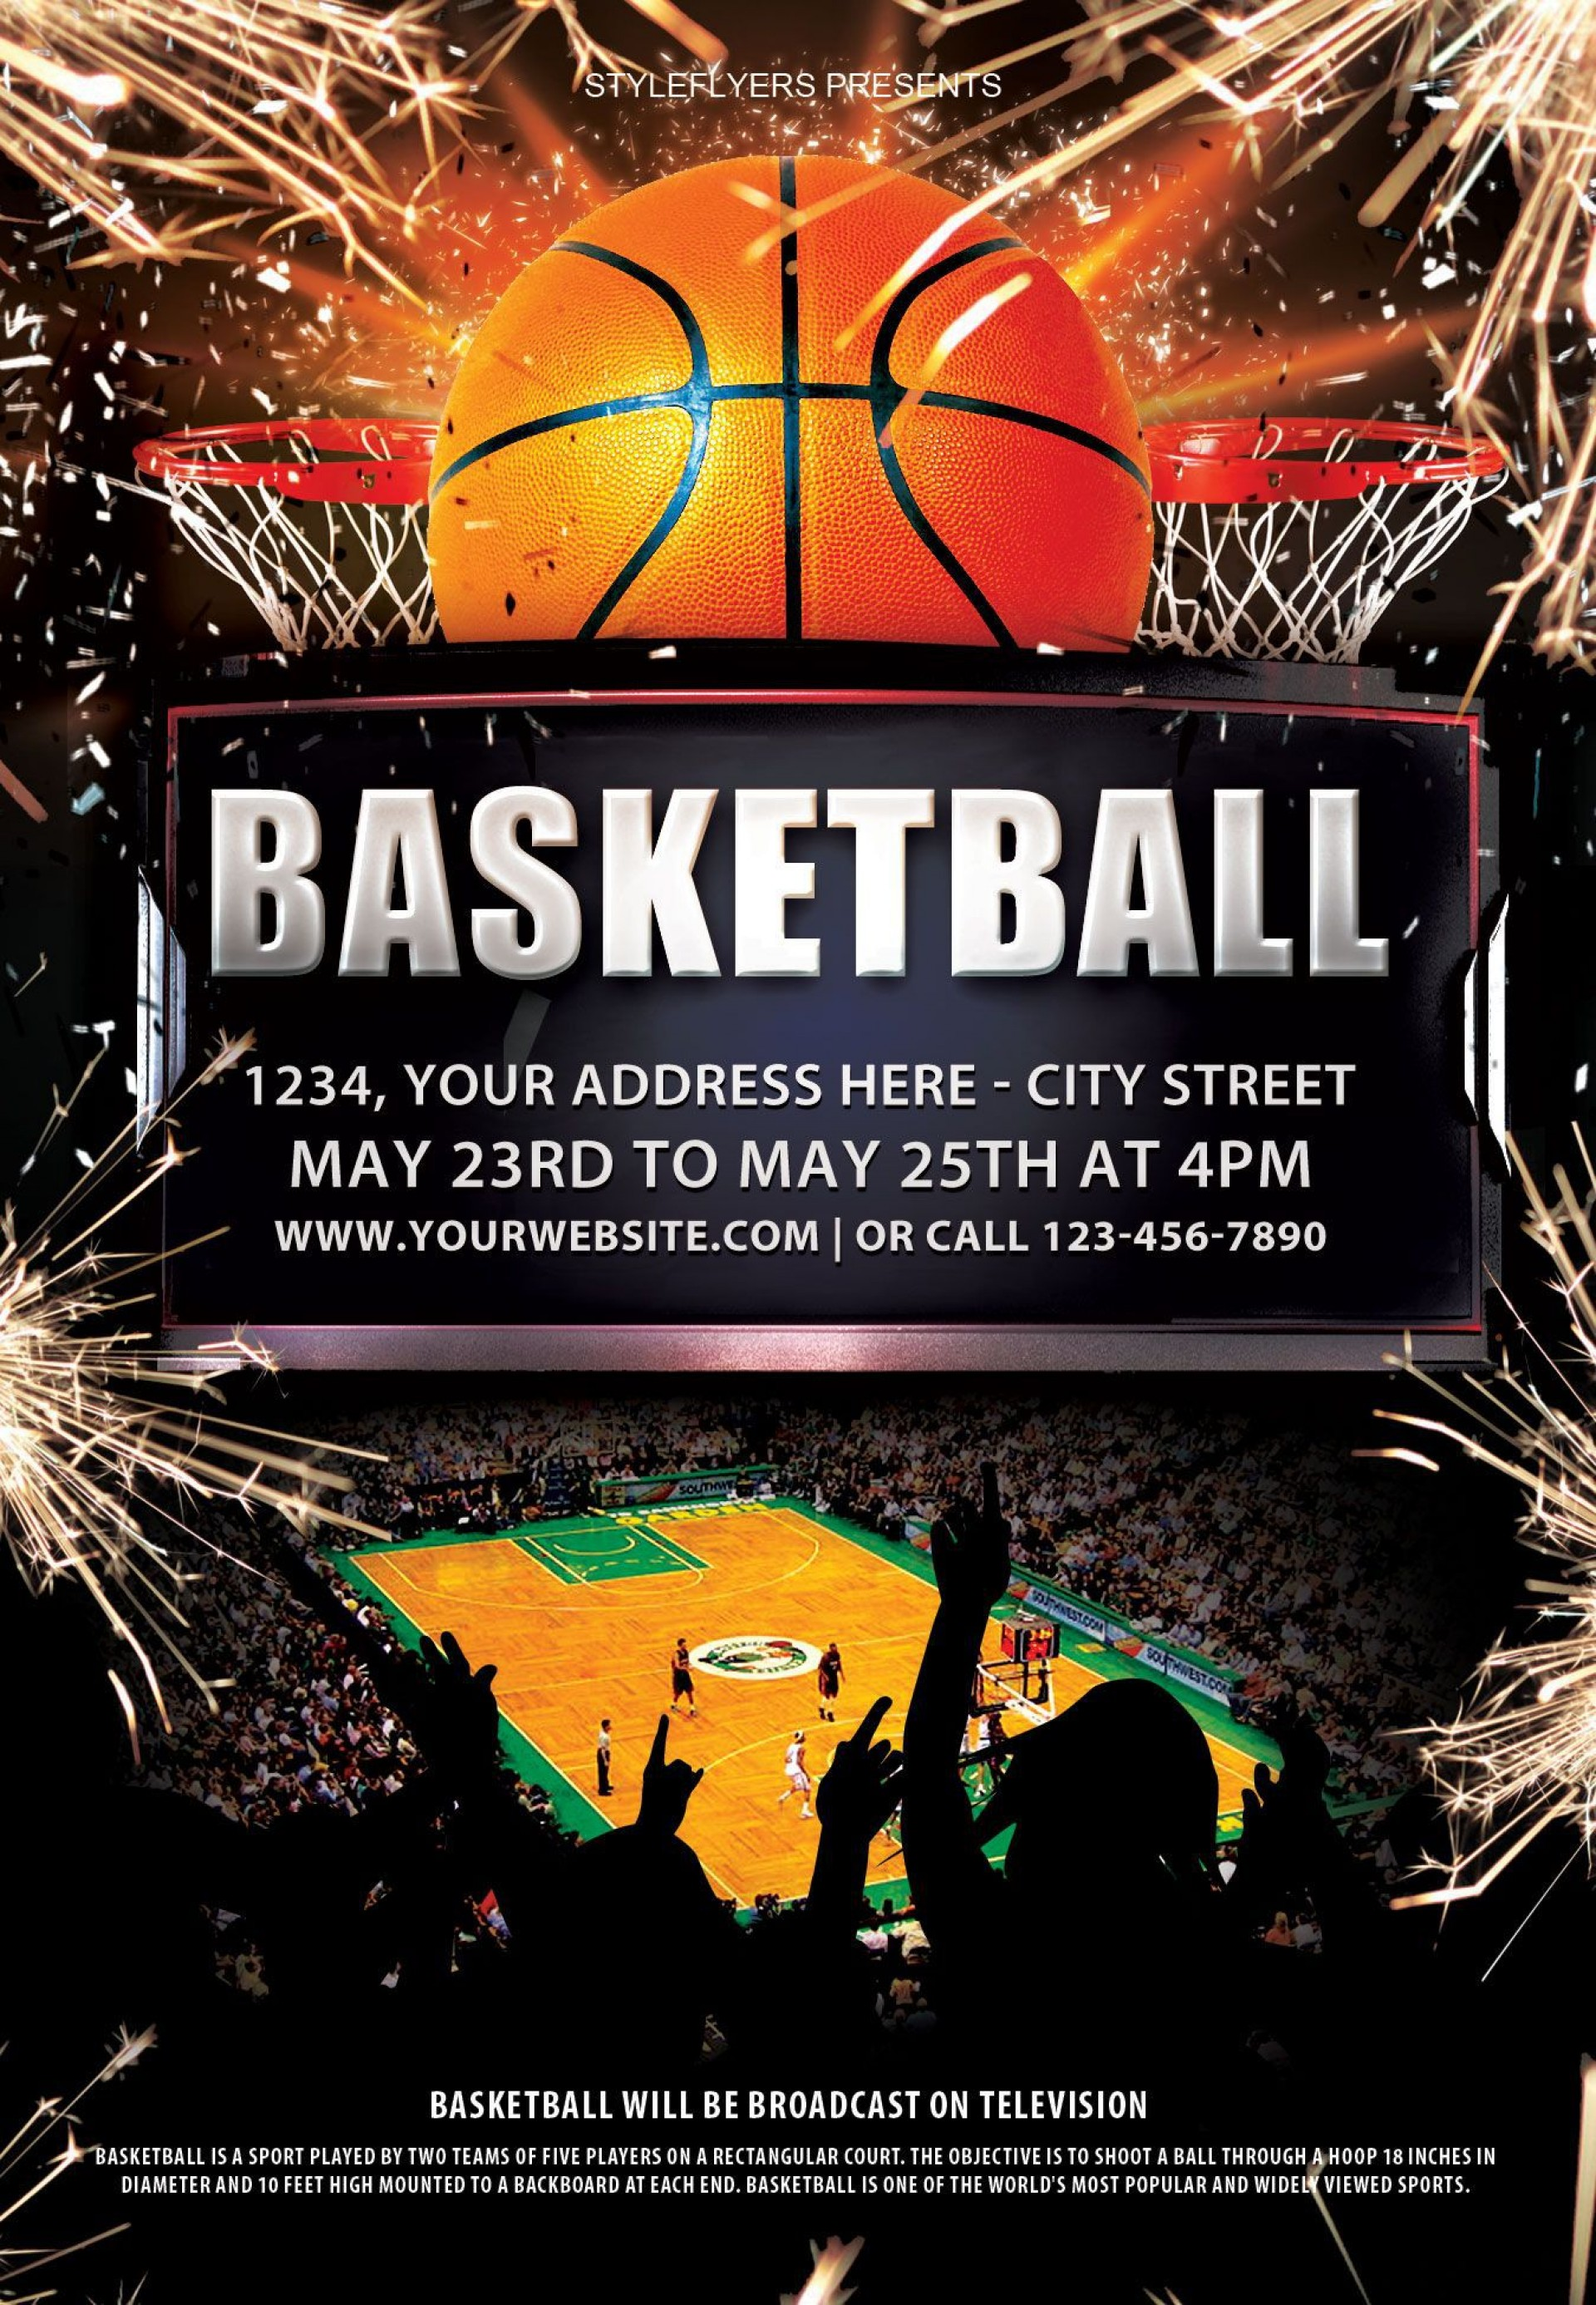 003 Beautiful Basketball Flyer Template Free Photo  Brochure Tryout Camp1920